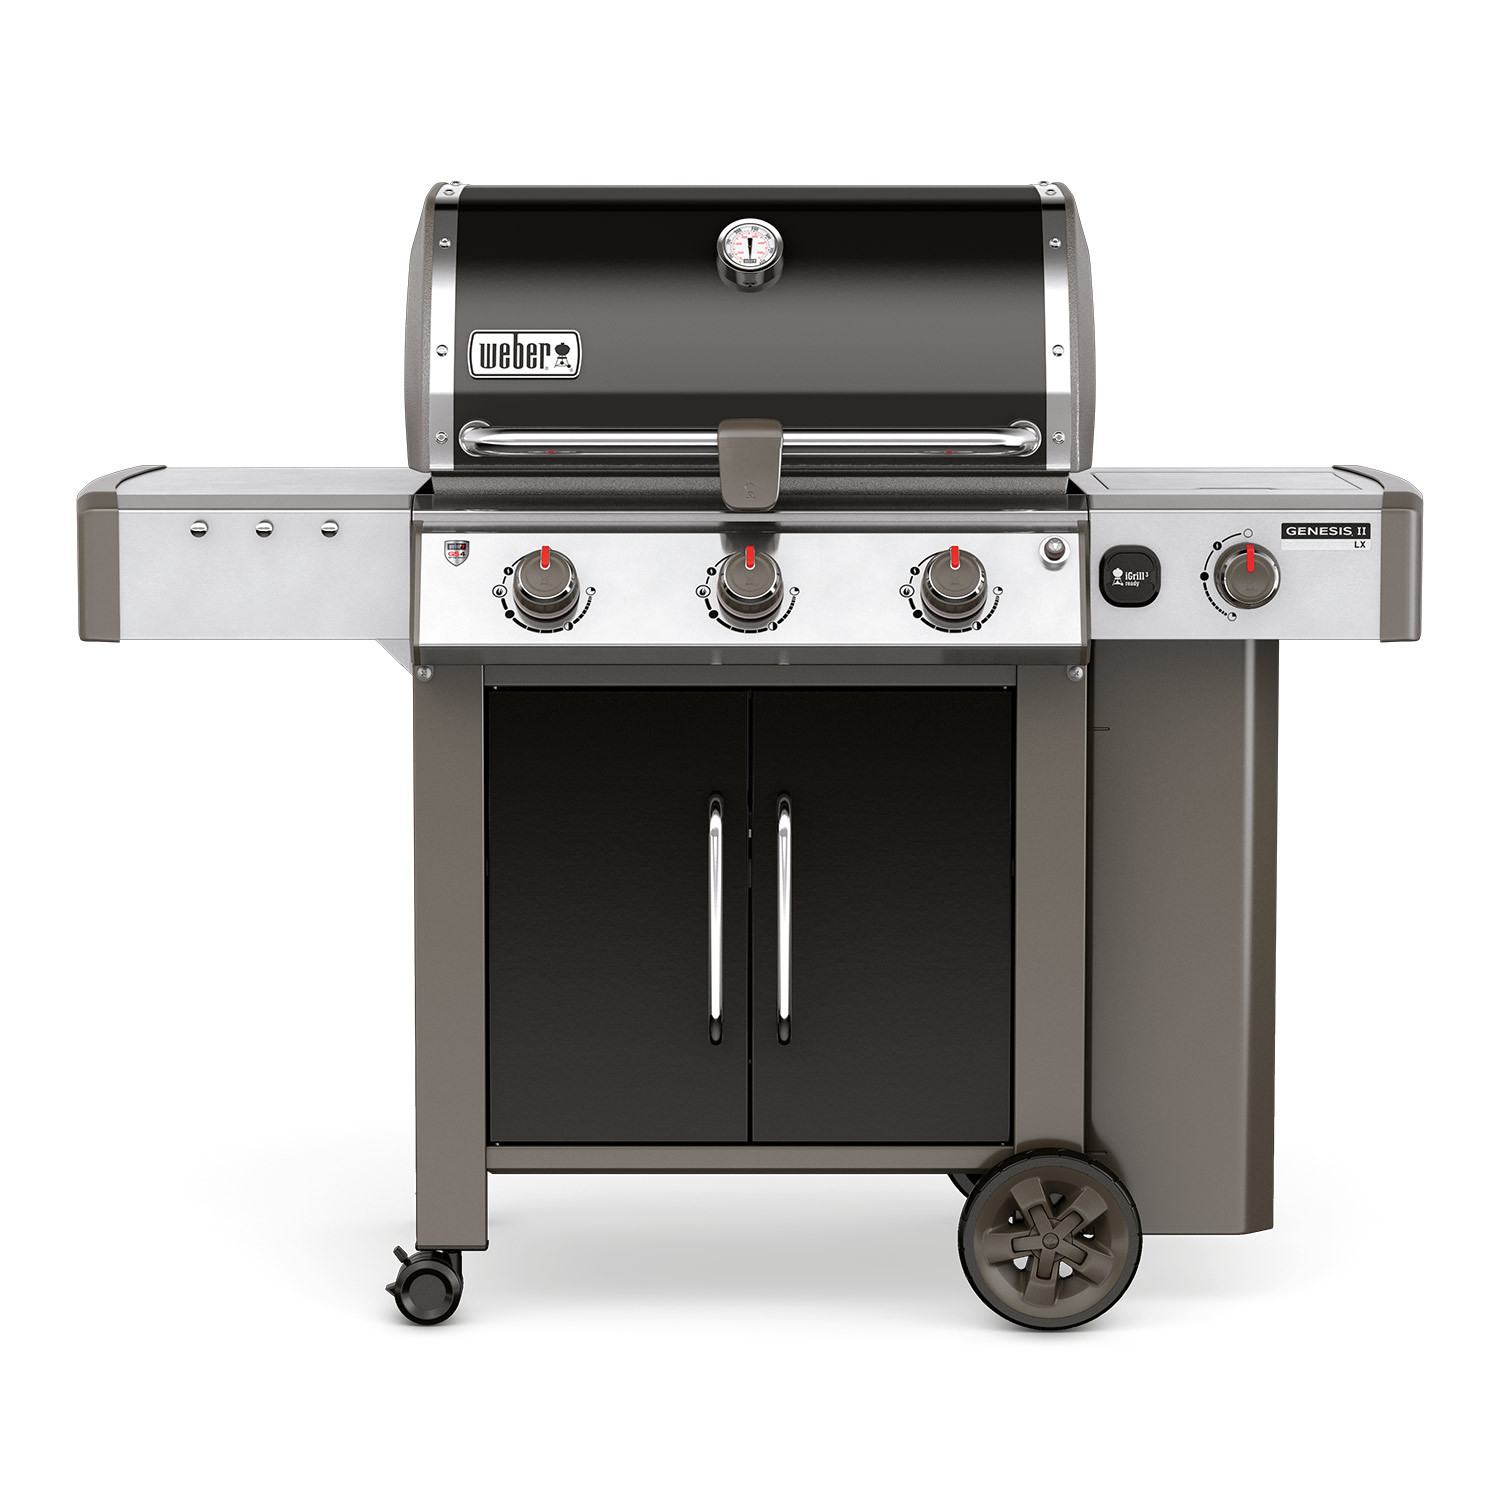 Weber Genesis II LX E-340 GBS Black Gas Barbecue 61014174